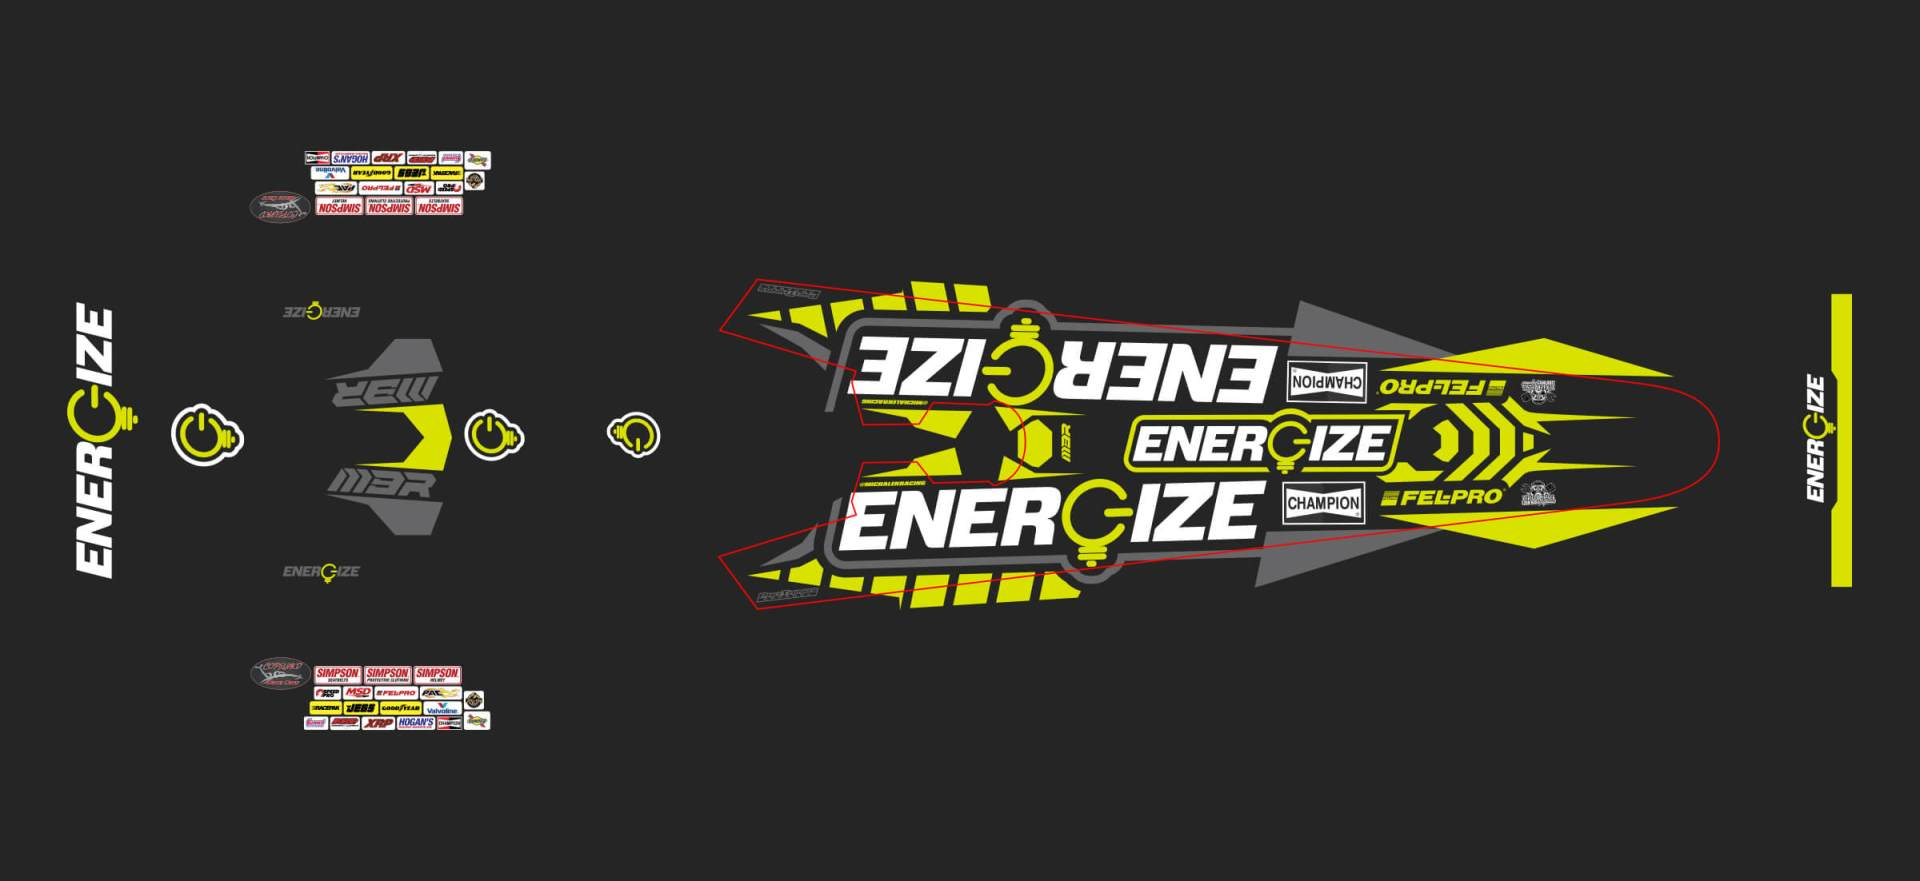 Overhead flat view of the React104 designed ENERGIZE A/fuel dragster.